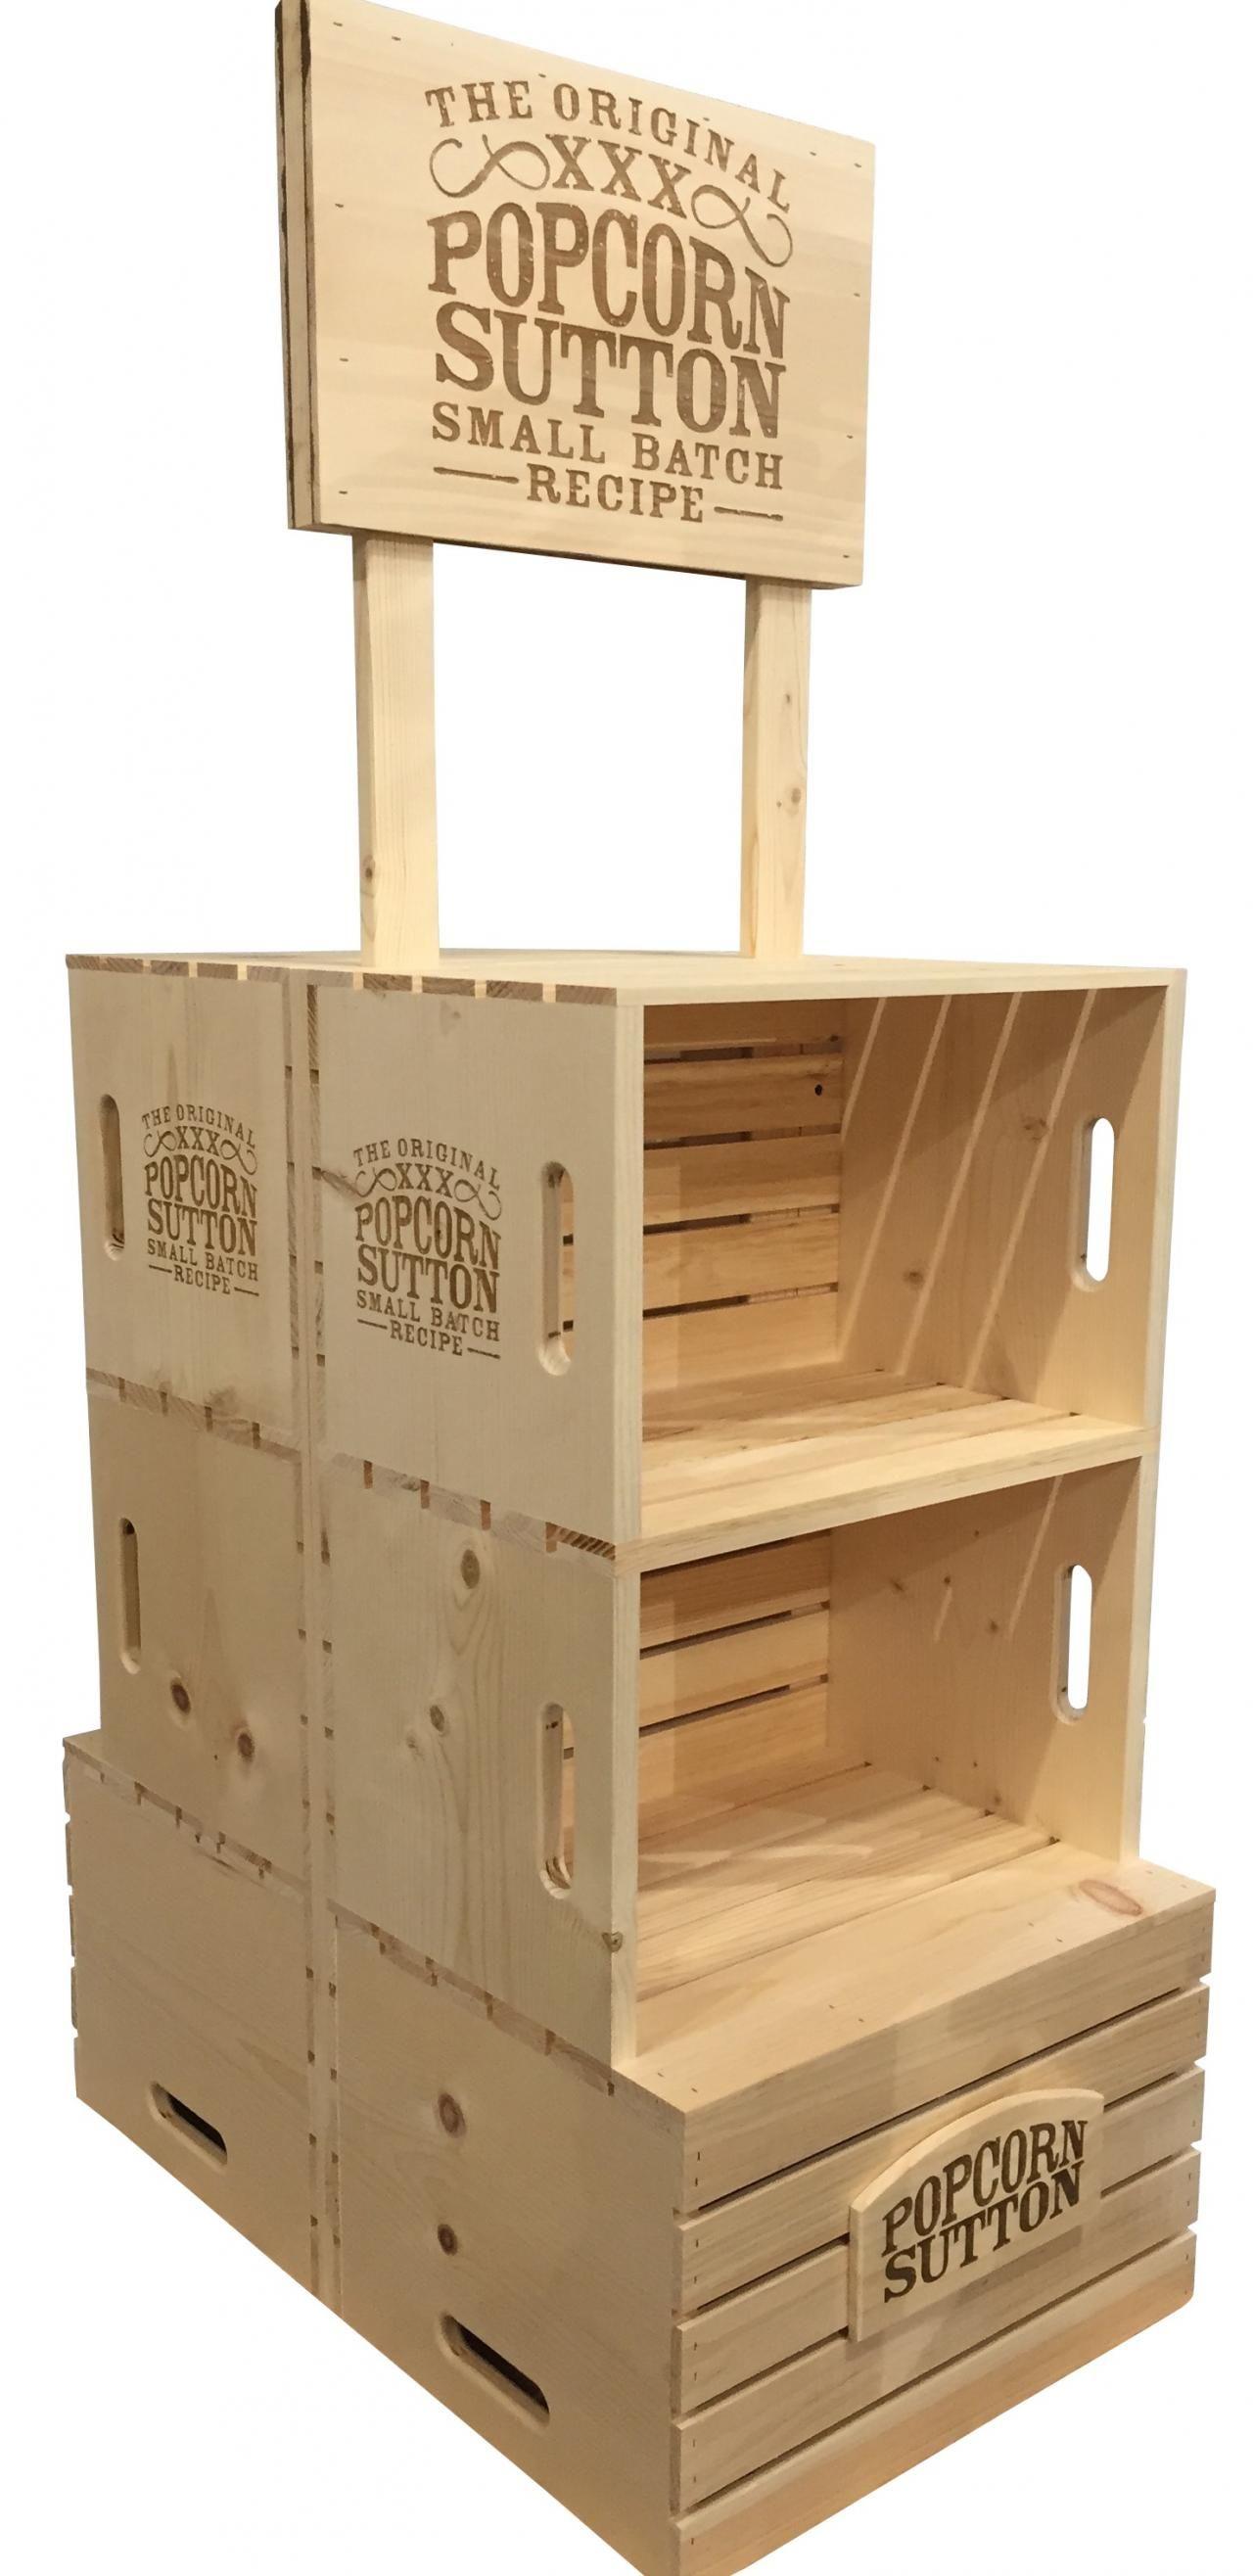 Double Sided Wood Crate Grocery Merchandiser Display With Branded Logo Jbrothersandcompany Com Crates Wood Crates Barn Wood Crafts